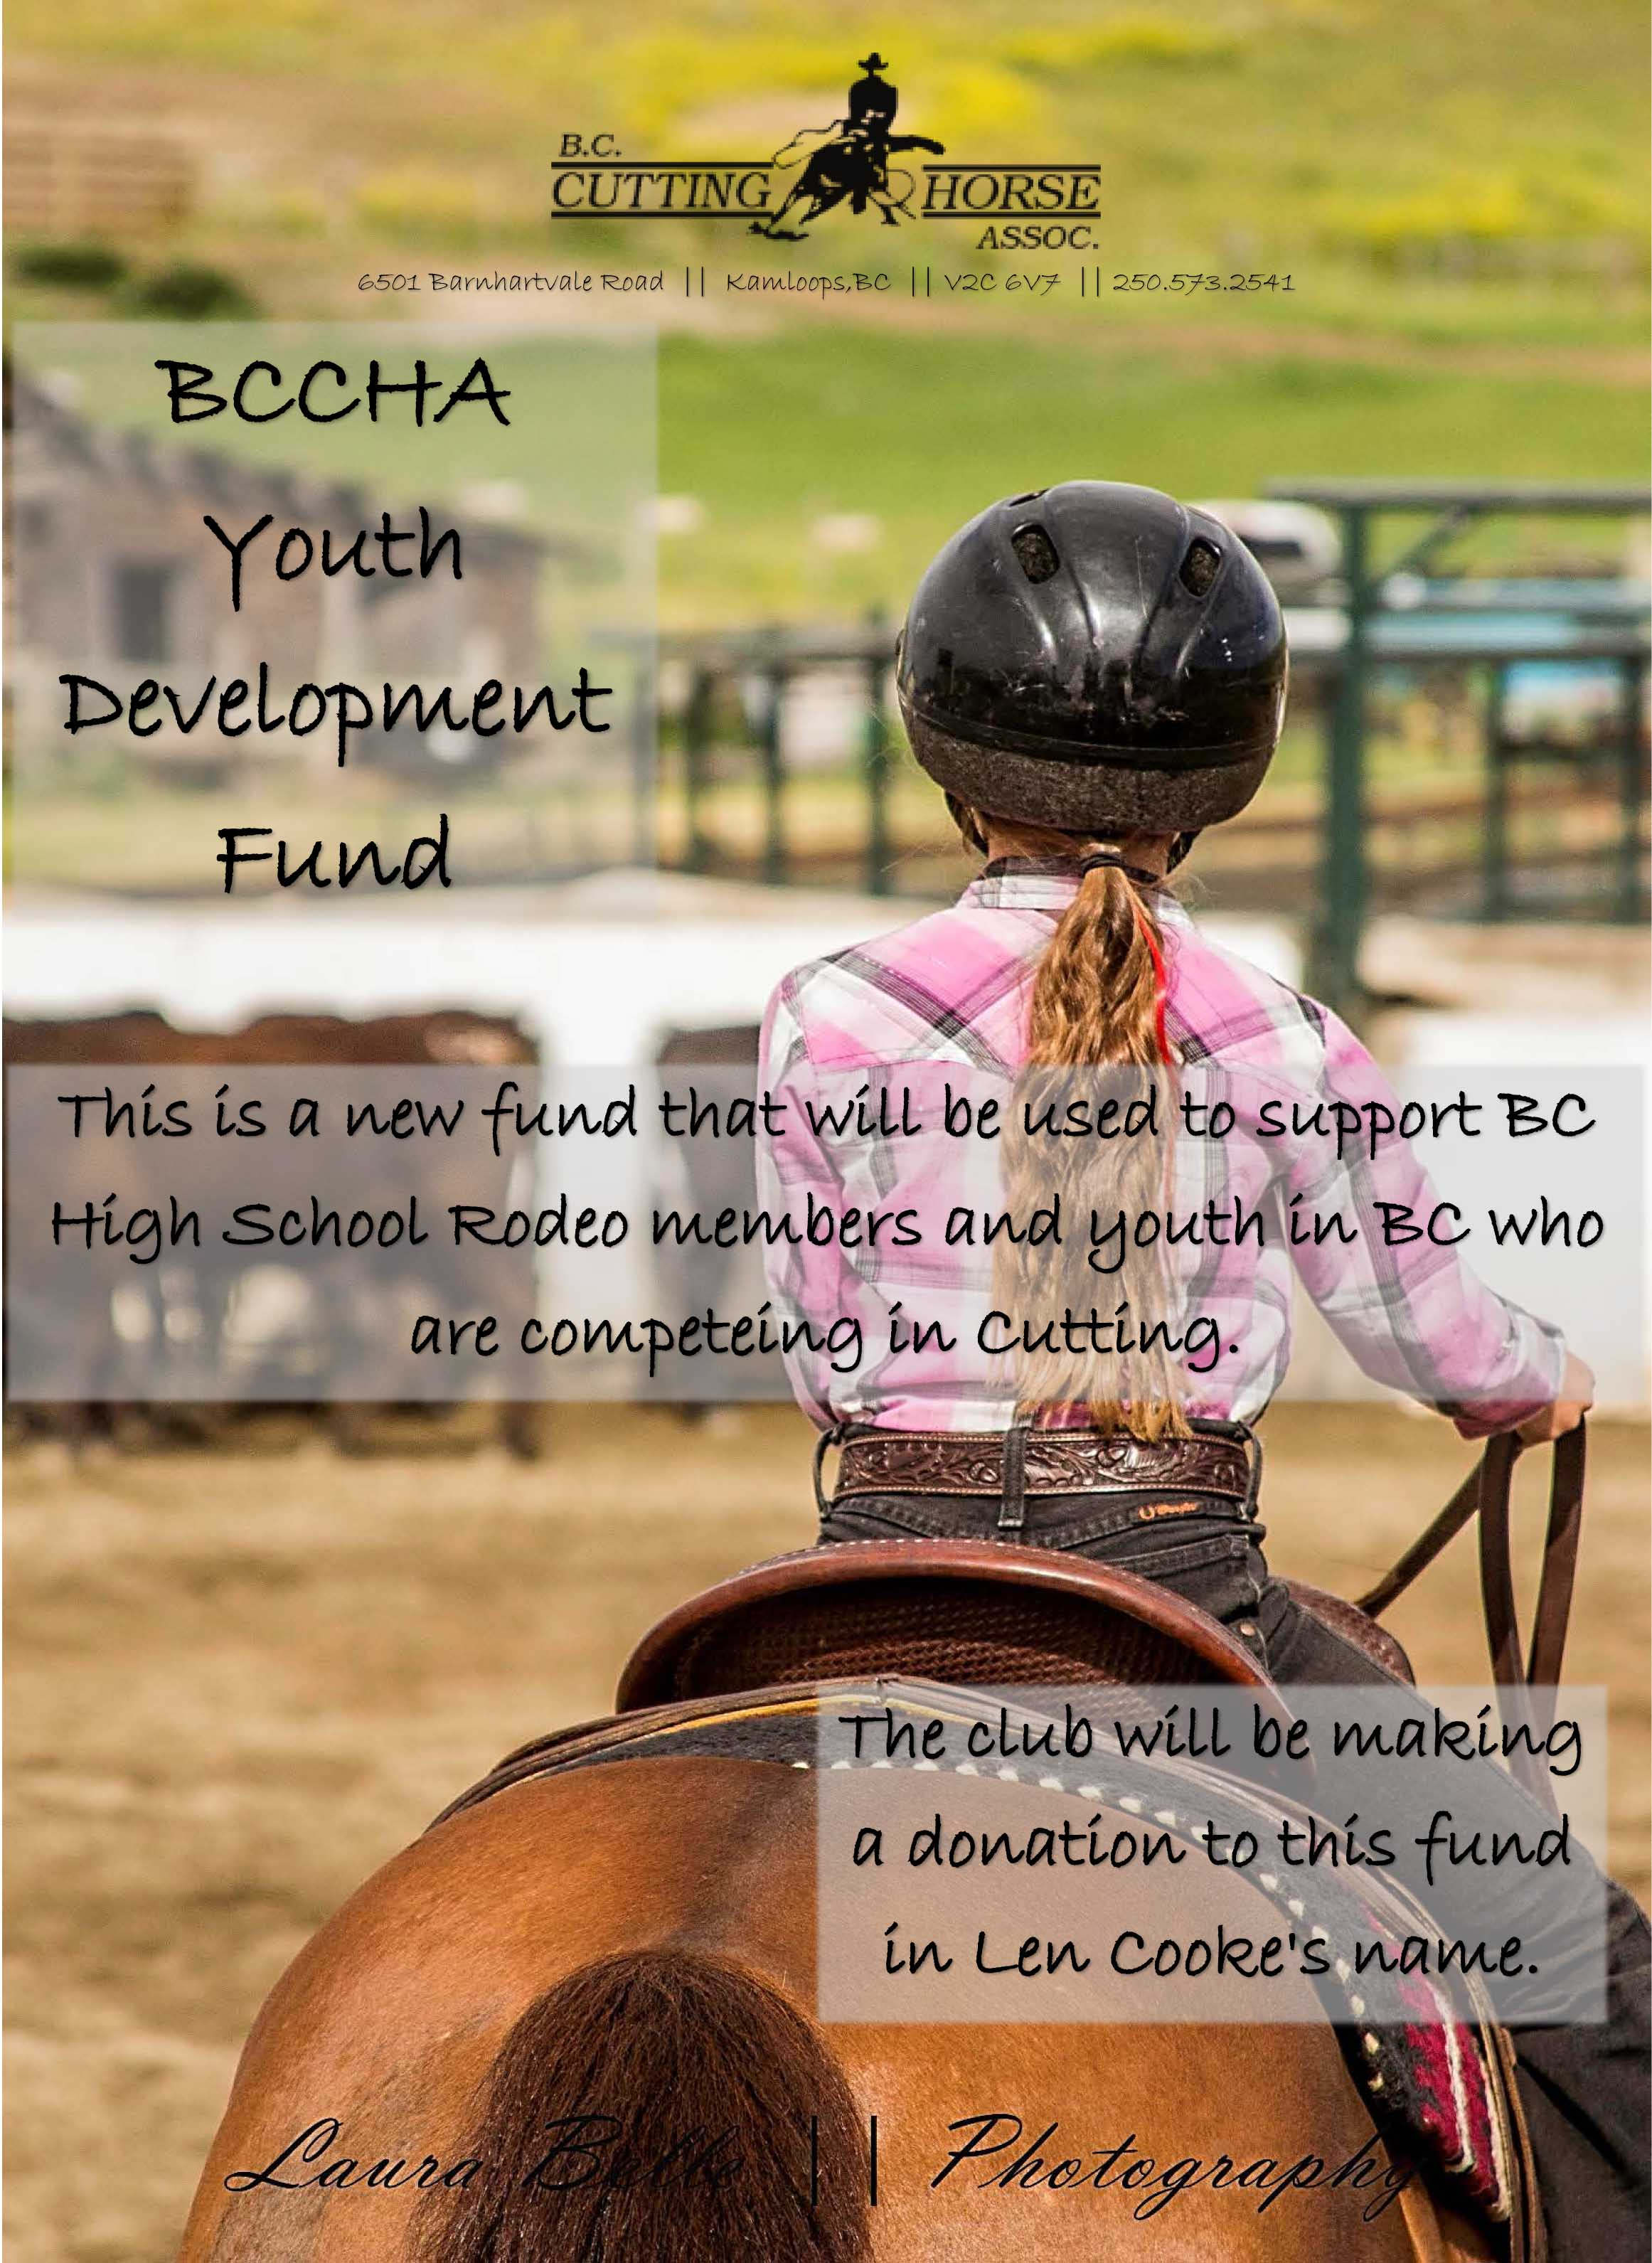 BCCHA Youth Development Fund